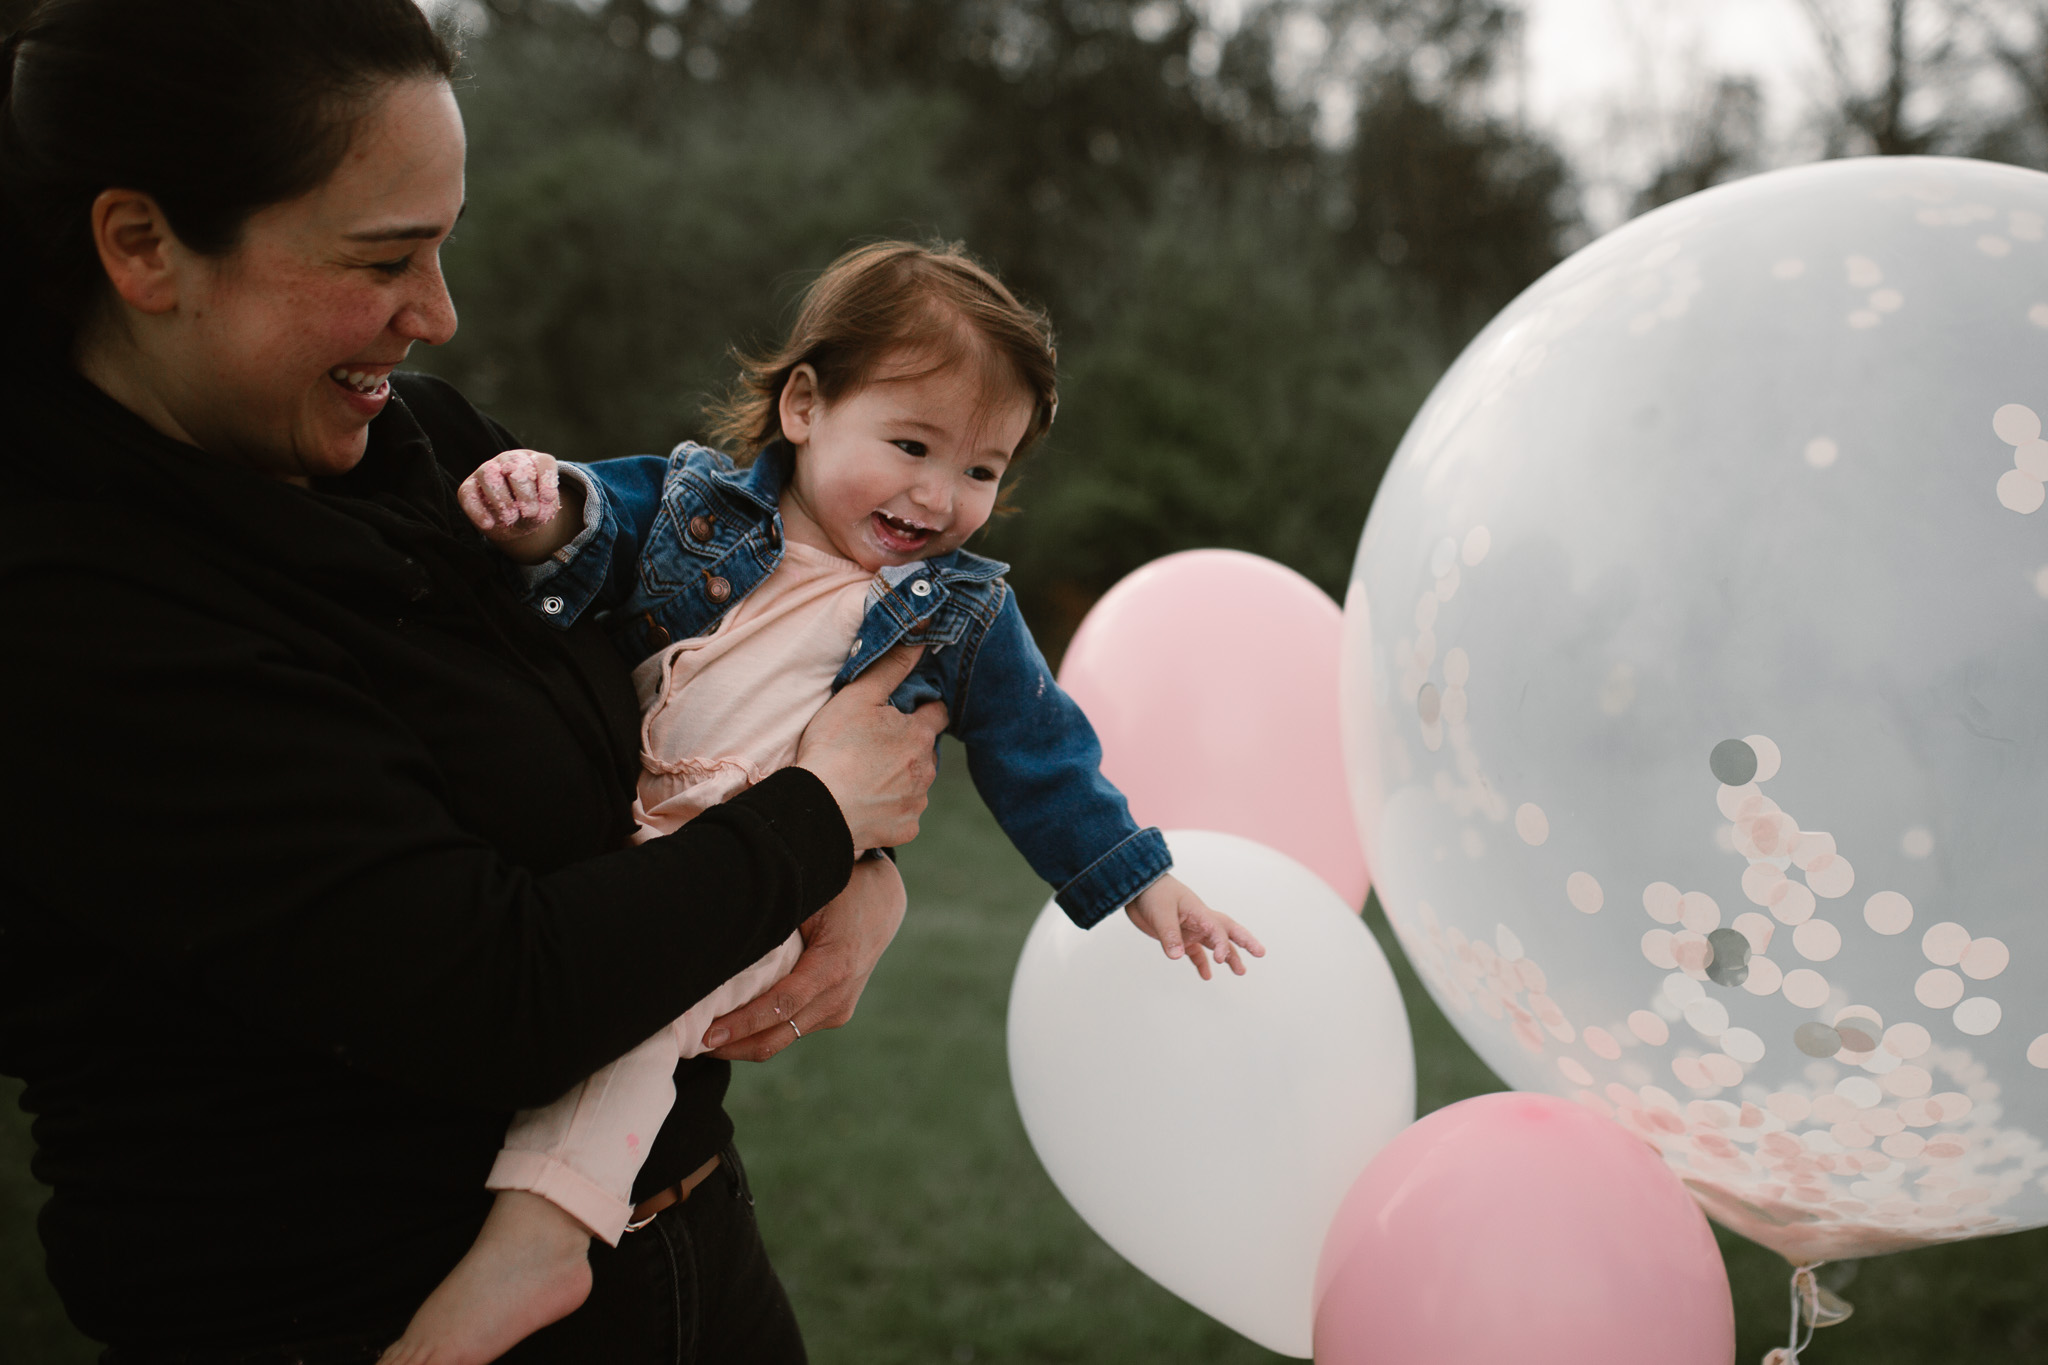 Mom holding her one year old little girl with icing on her face as she plays with her giant white and pink balloons at Red Rock Overlook in Leesburg, VA